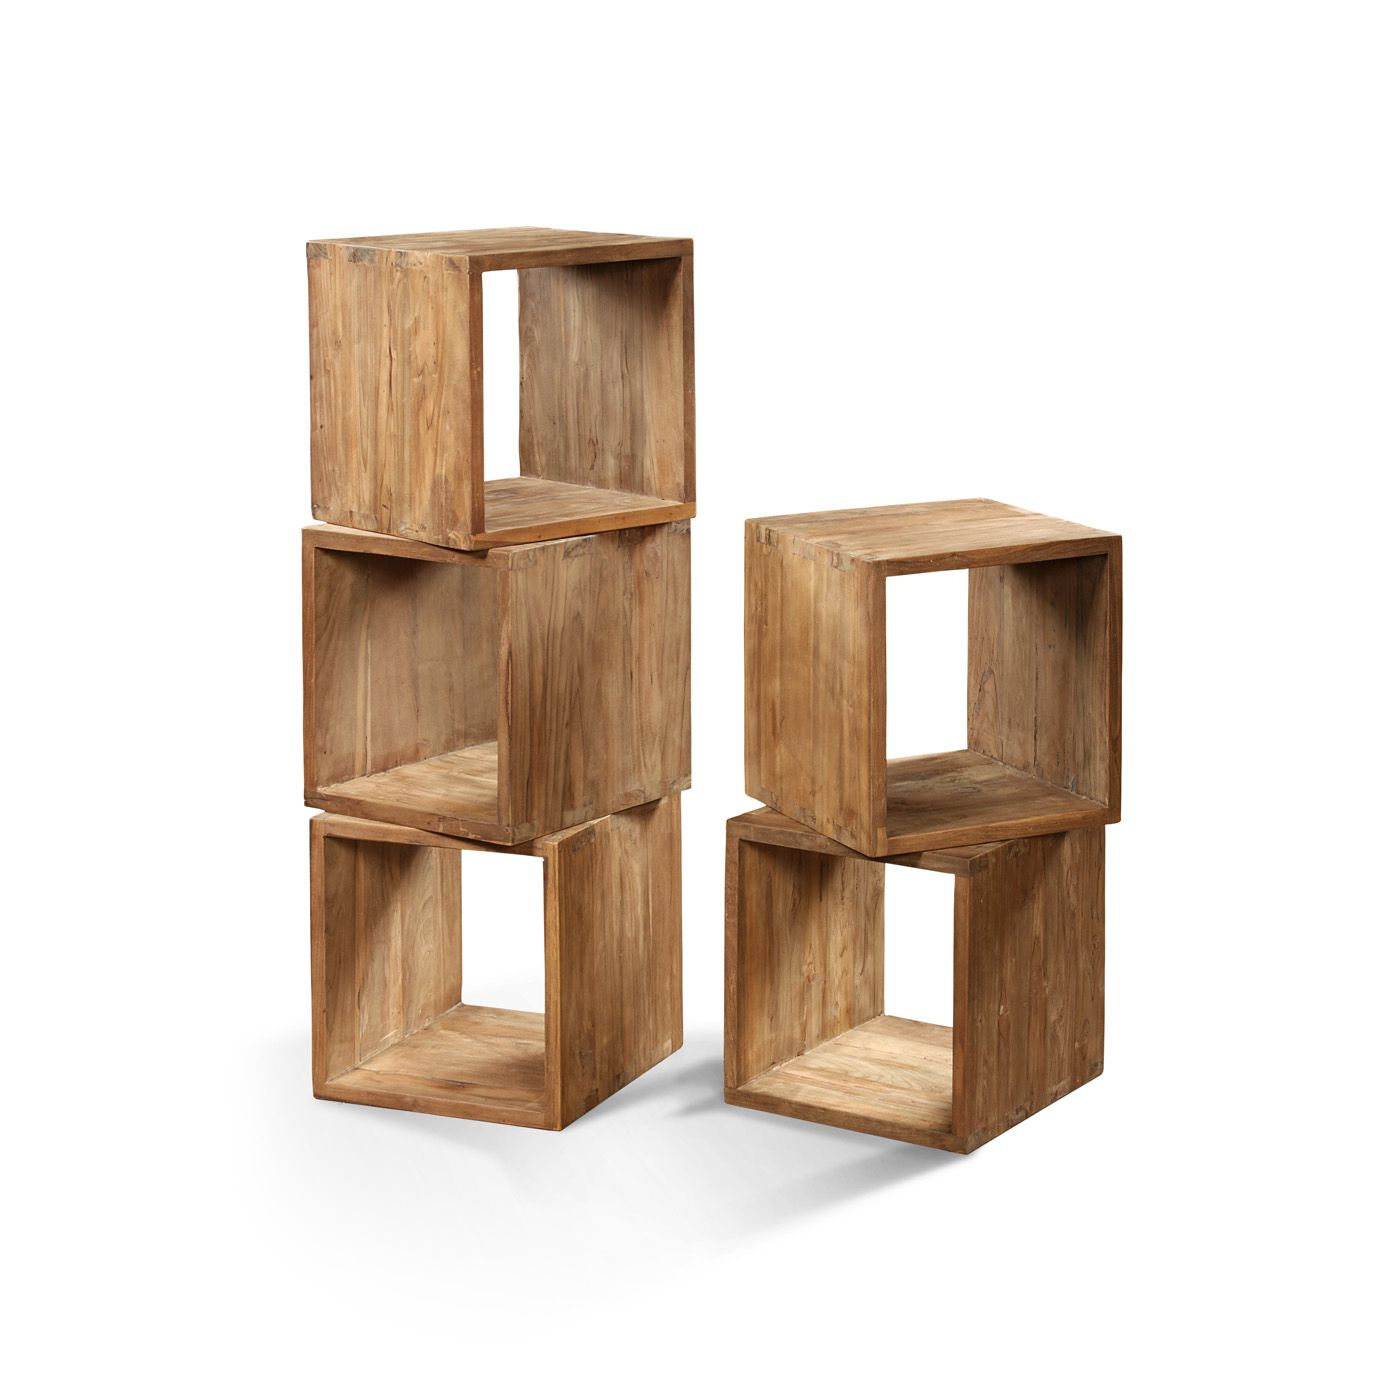 Wooden Storage Cubes Drawers Cube Furniture Cube